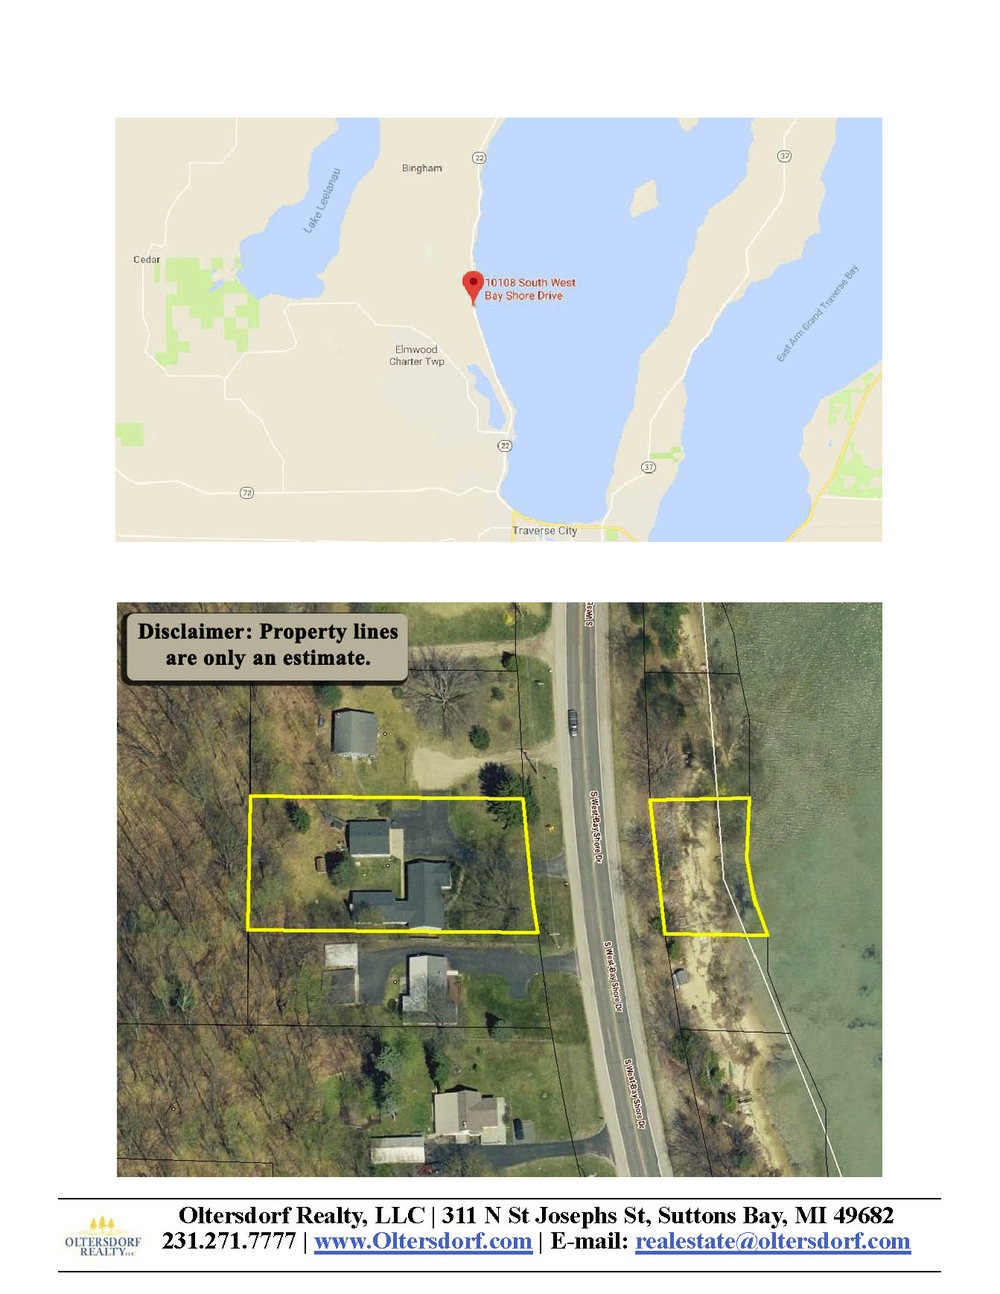 10108 S West Bay Shore Drive, Traverse City, MI – Ranch Home & 106' on West Grand Traverse Bay - Marketing Packet by Oltersdorf Realty LLC (8).jpg